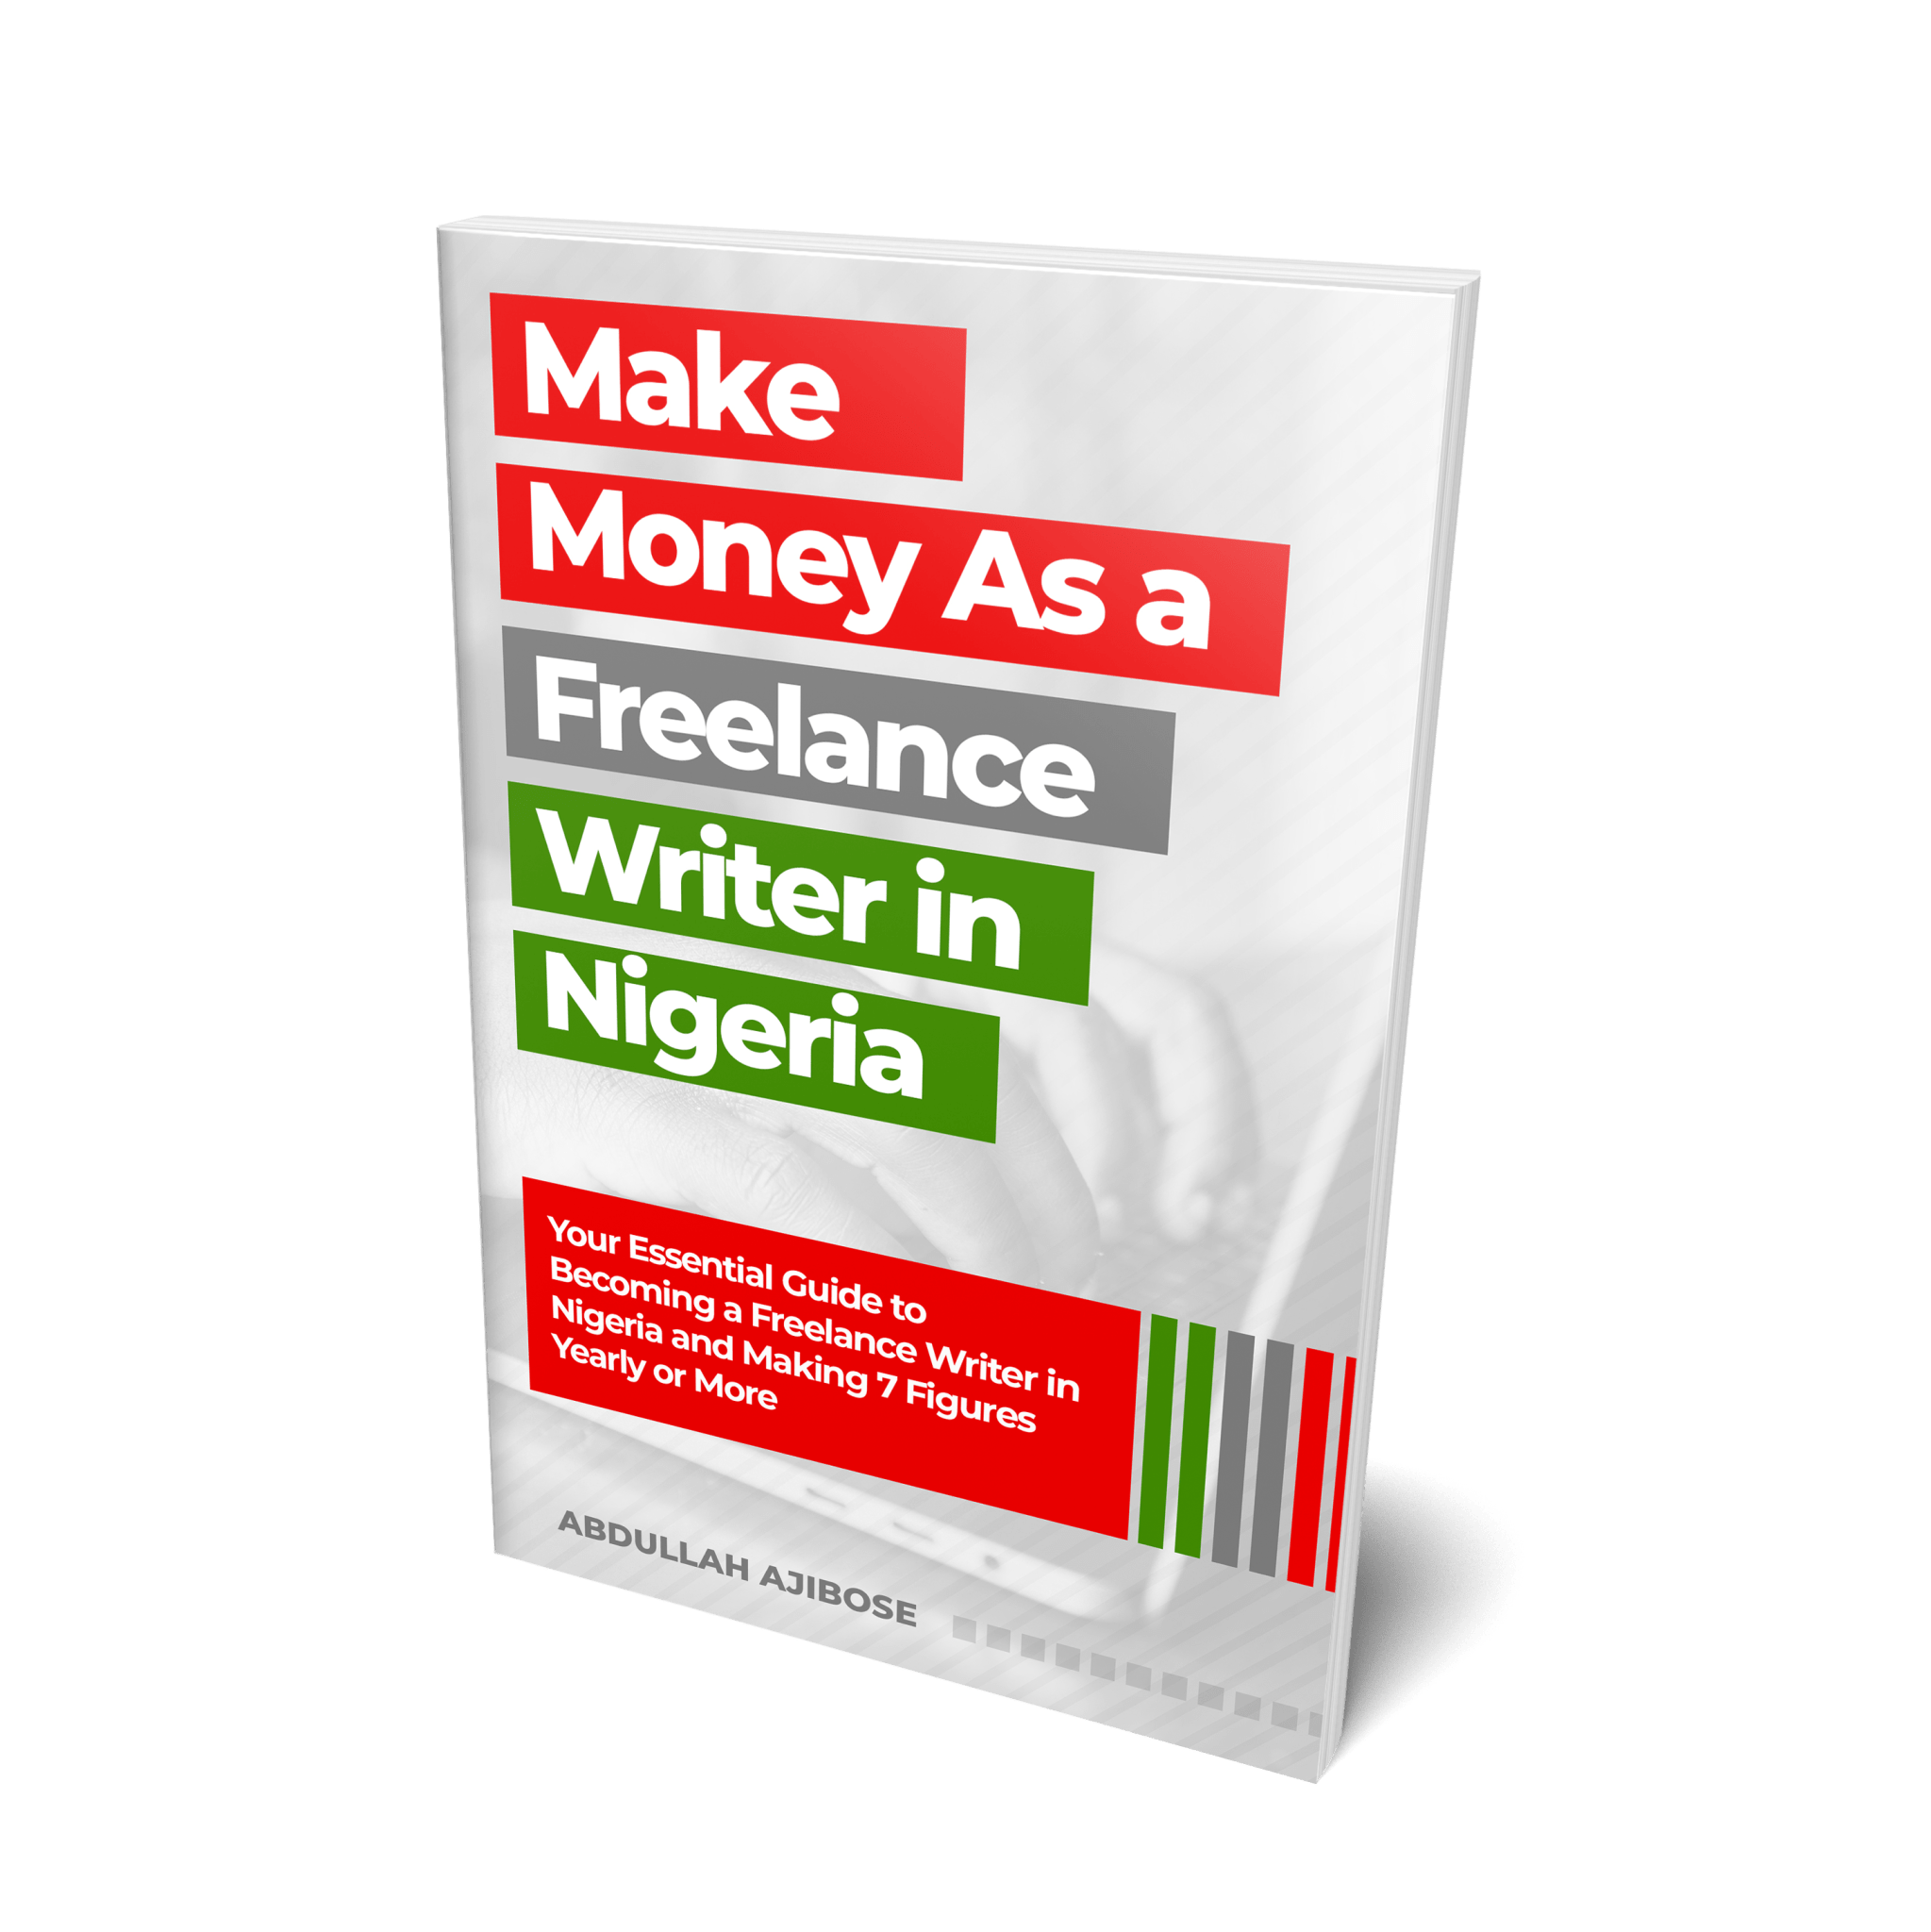 Make Money As a Freelance Writer in Nigeria